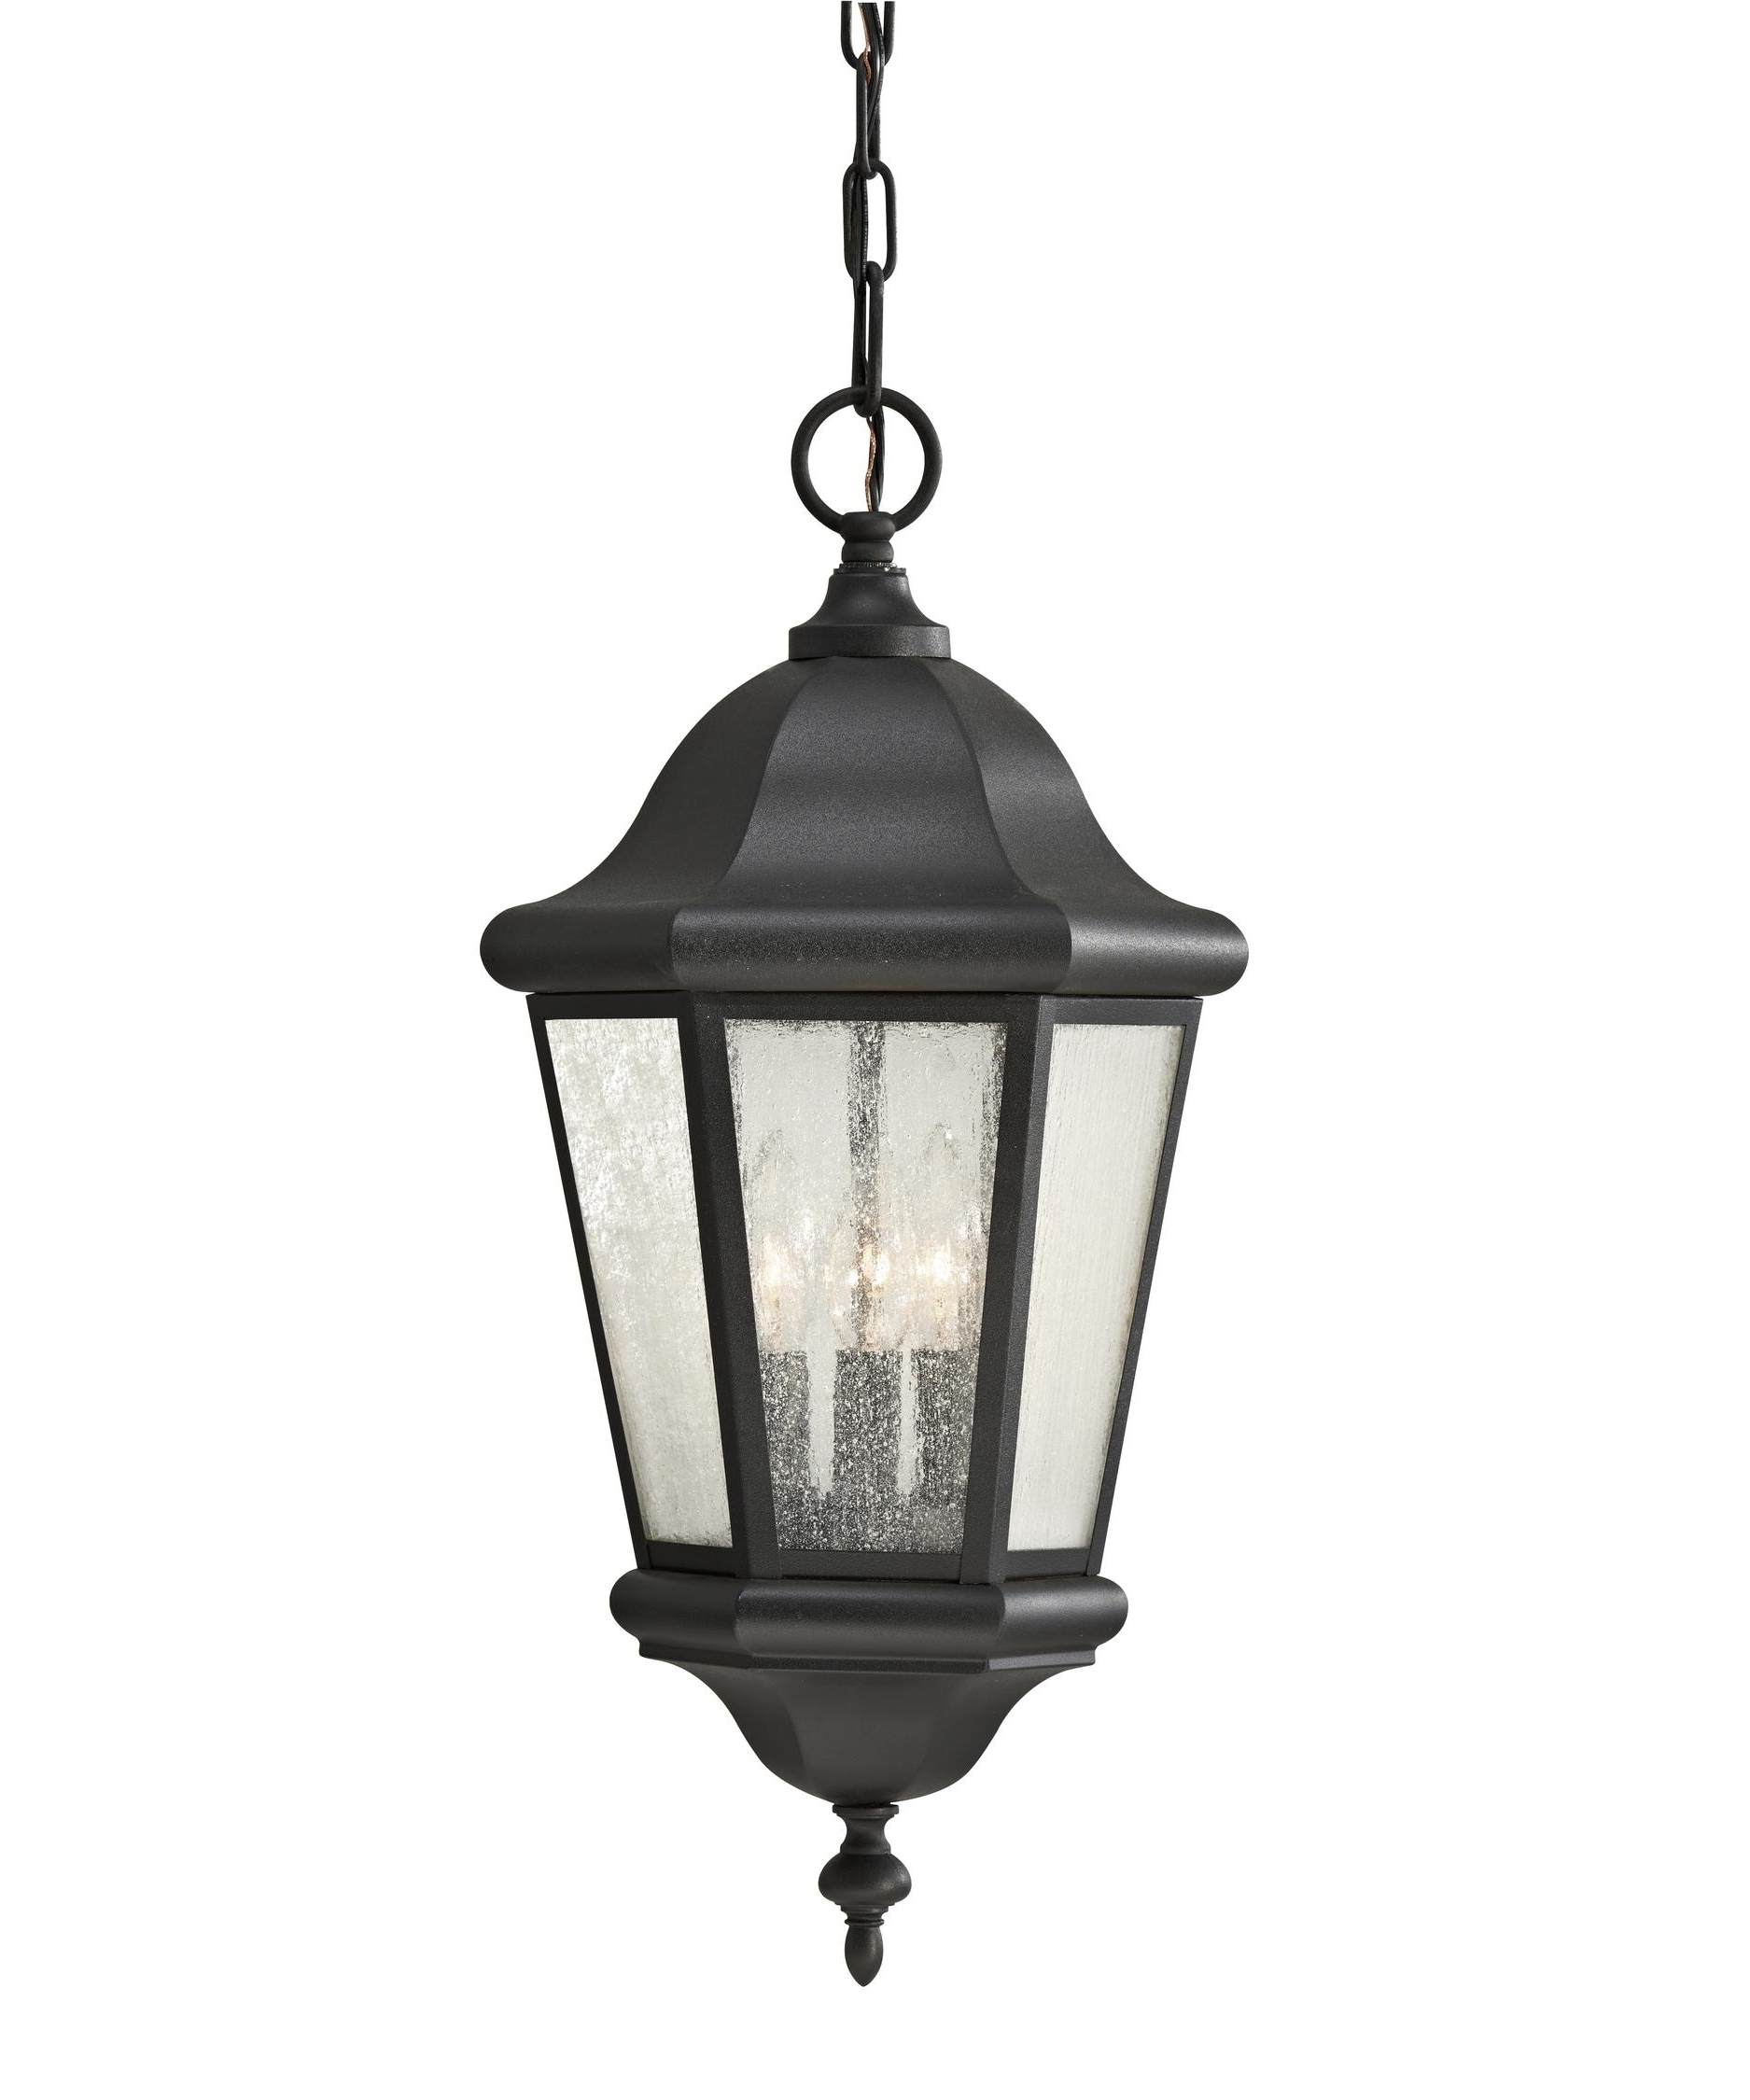 Outdoor : Stunning Outdoor Hanging Lantern Hampton Bay Hanging For Most Up To Date Outdoor Hanging Oil Lanterns (View 17 of 20)